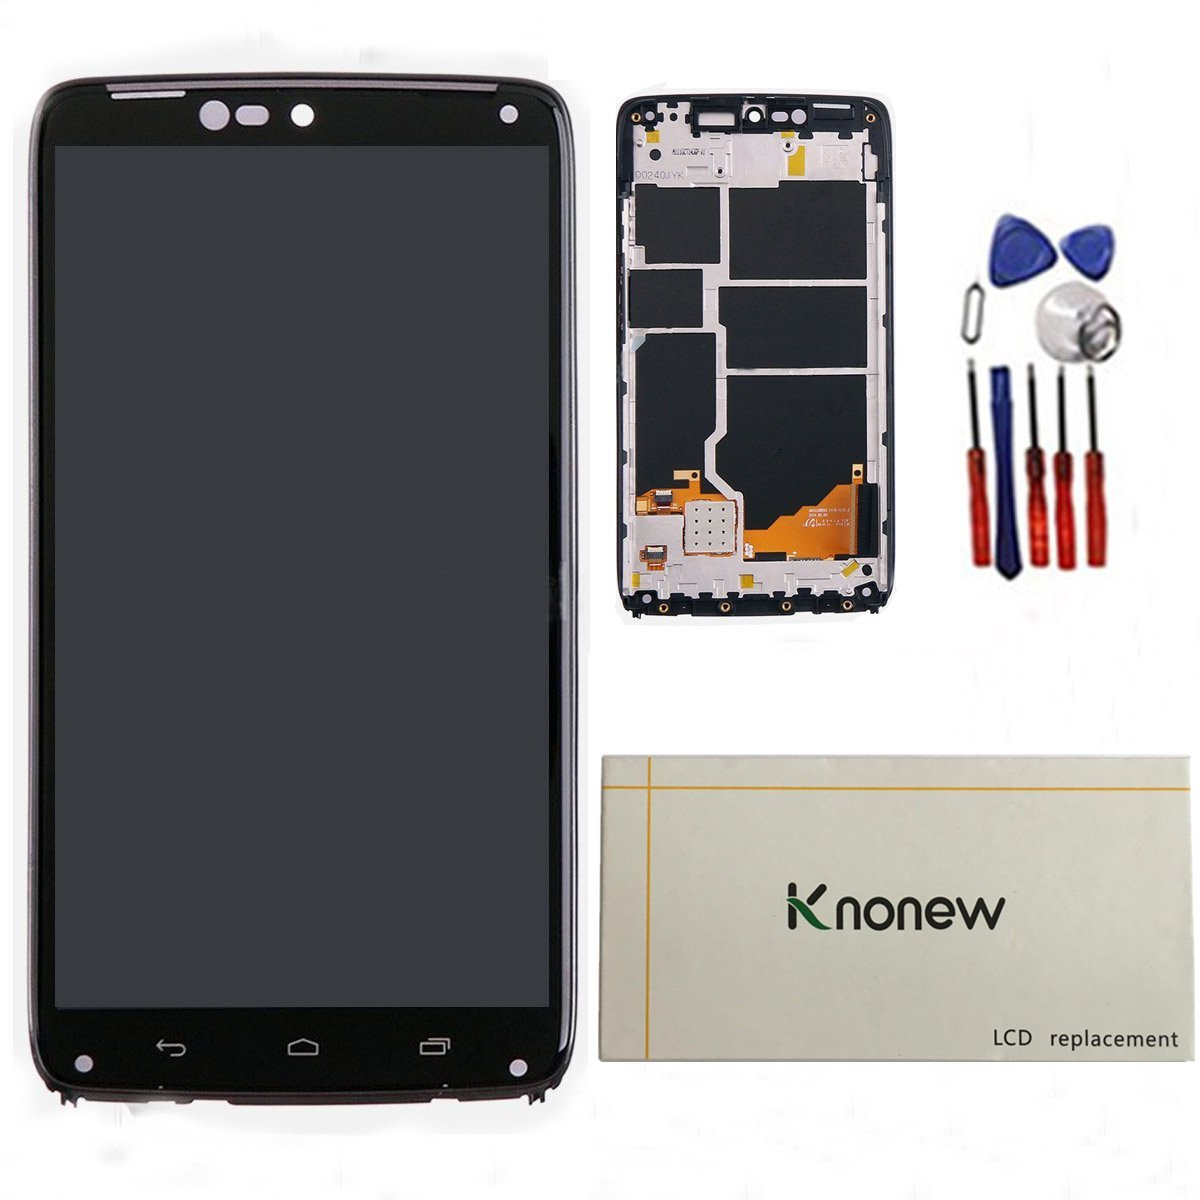 KNONEW For Motorola Droid Turbo XT1254 LCD Display Touch Screen Digitizer Assembly Replacement +Frame Tools(Black)